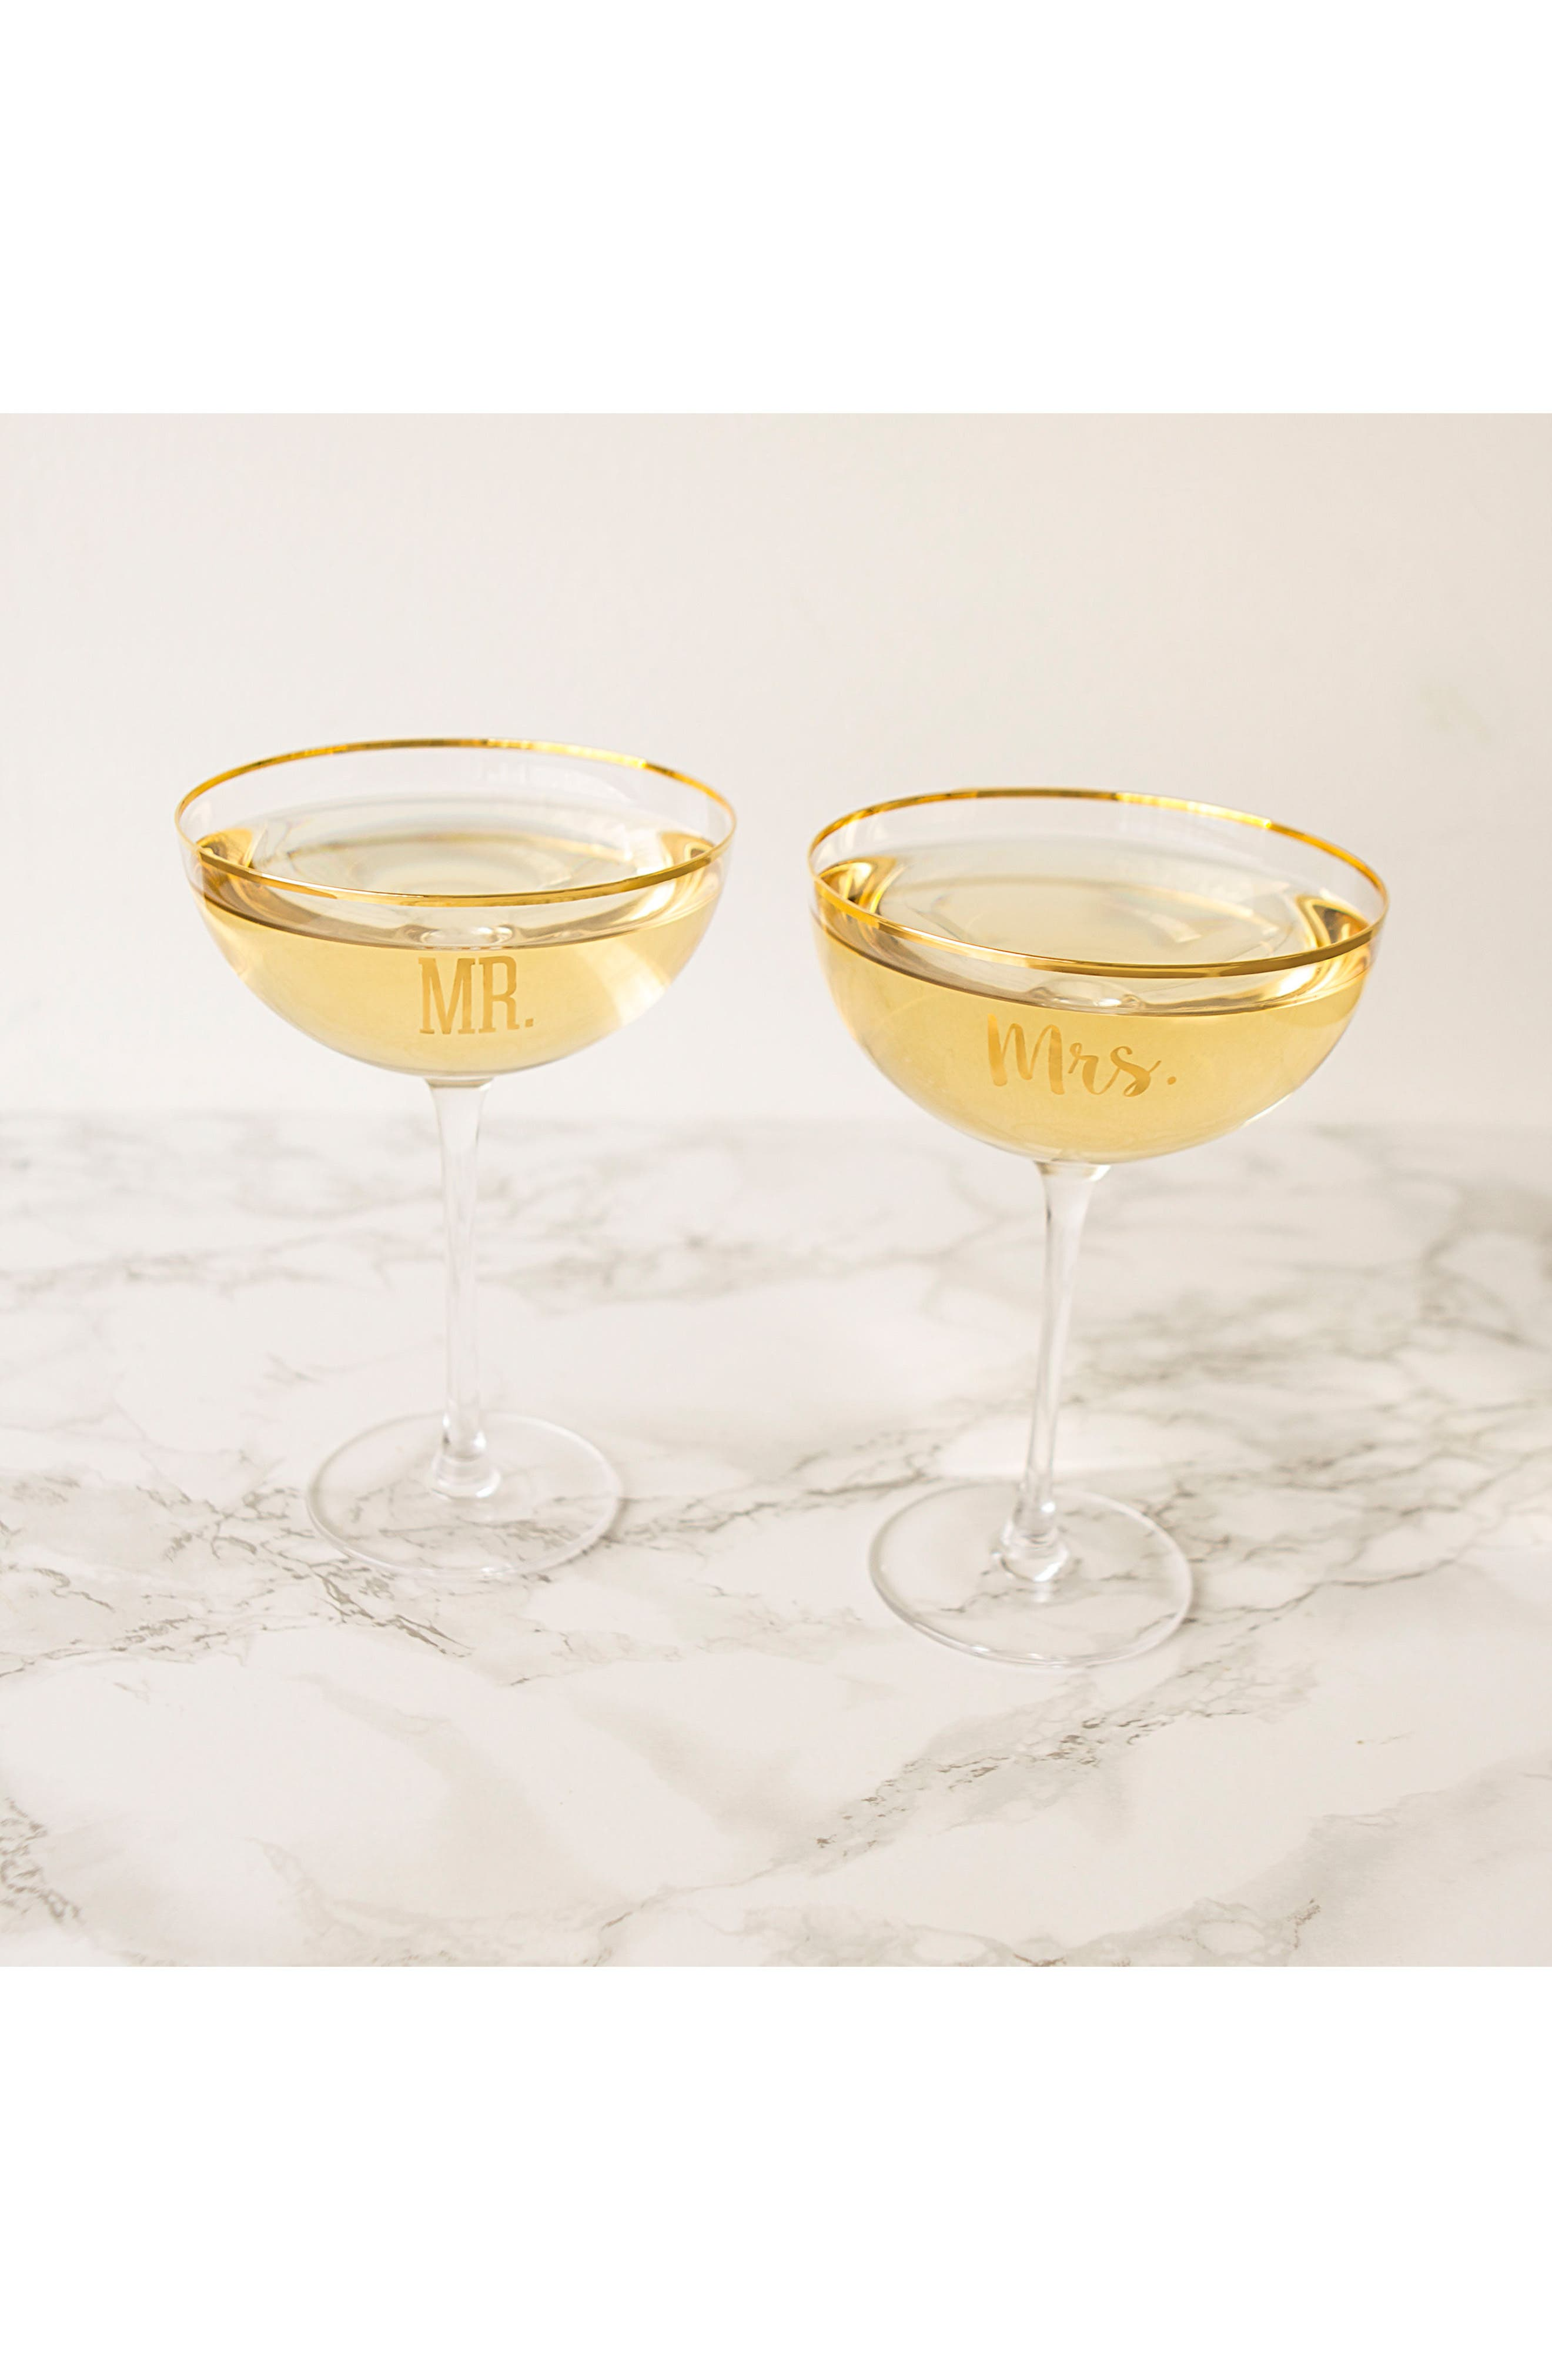 Mr. & Mrs. Set of 2 Champagne Coupe Toasting Glasses,                             Alternate thumbnail 5, color,                             710